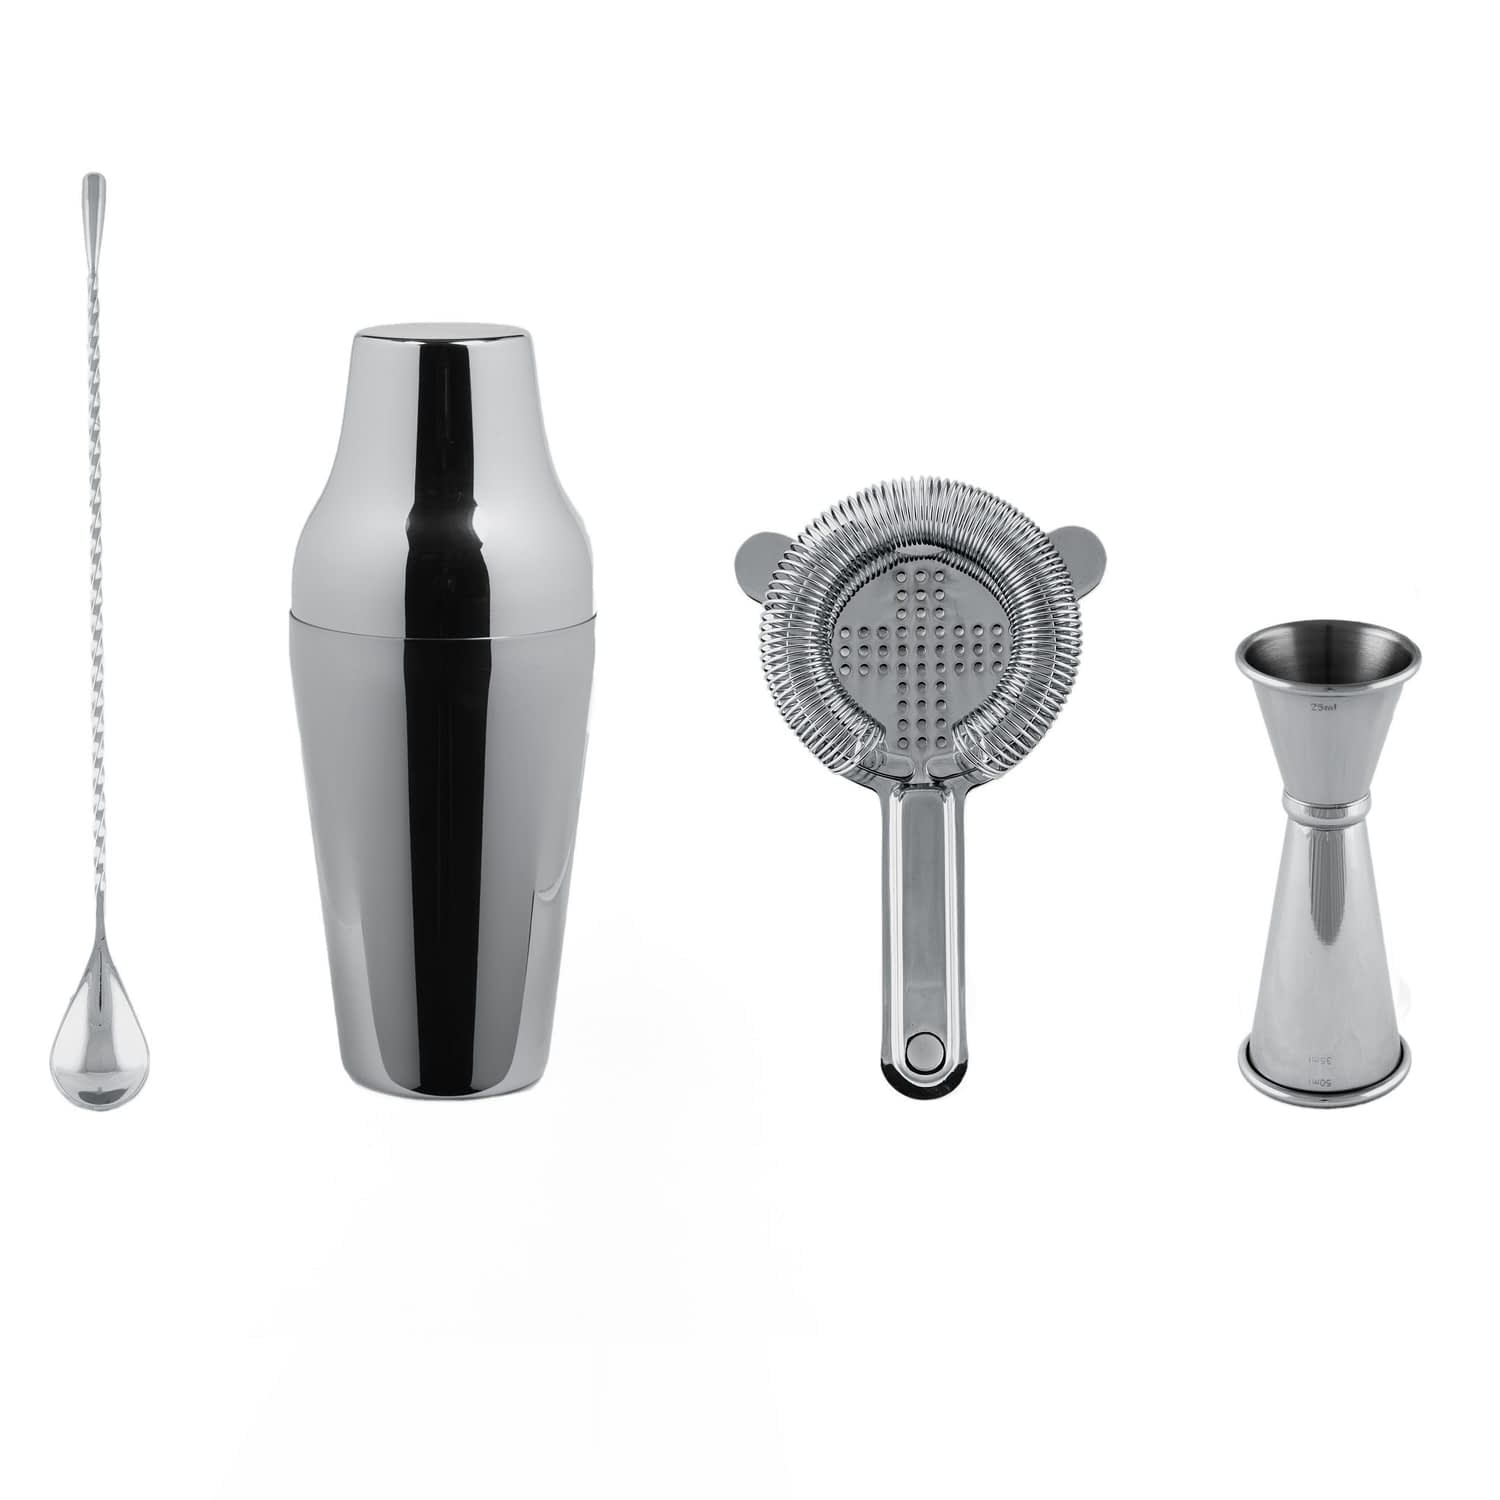 Cocktail Kit, Cocktail Shaker Set, Stainless Steel Barware, Cocktail Bar Tools, The Cocktail Shop, Australia